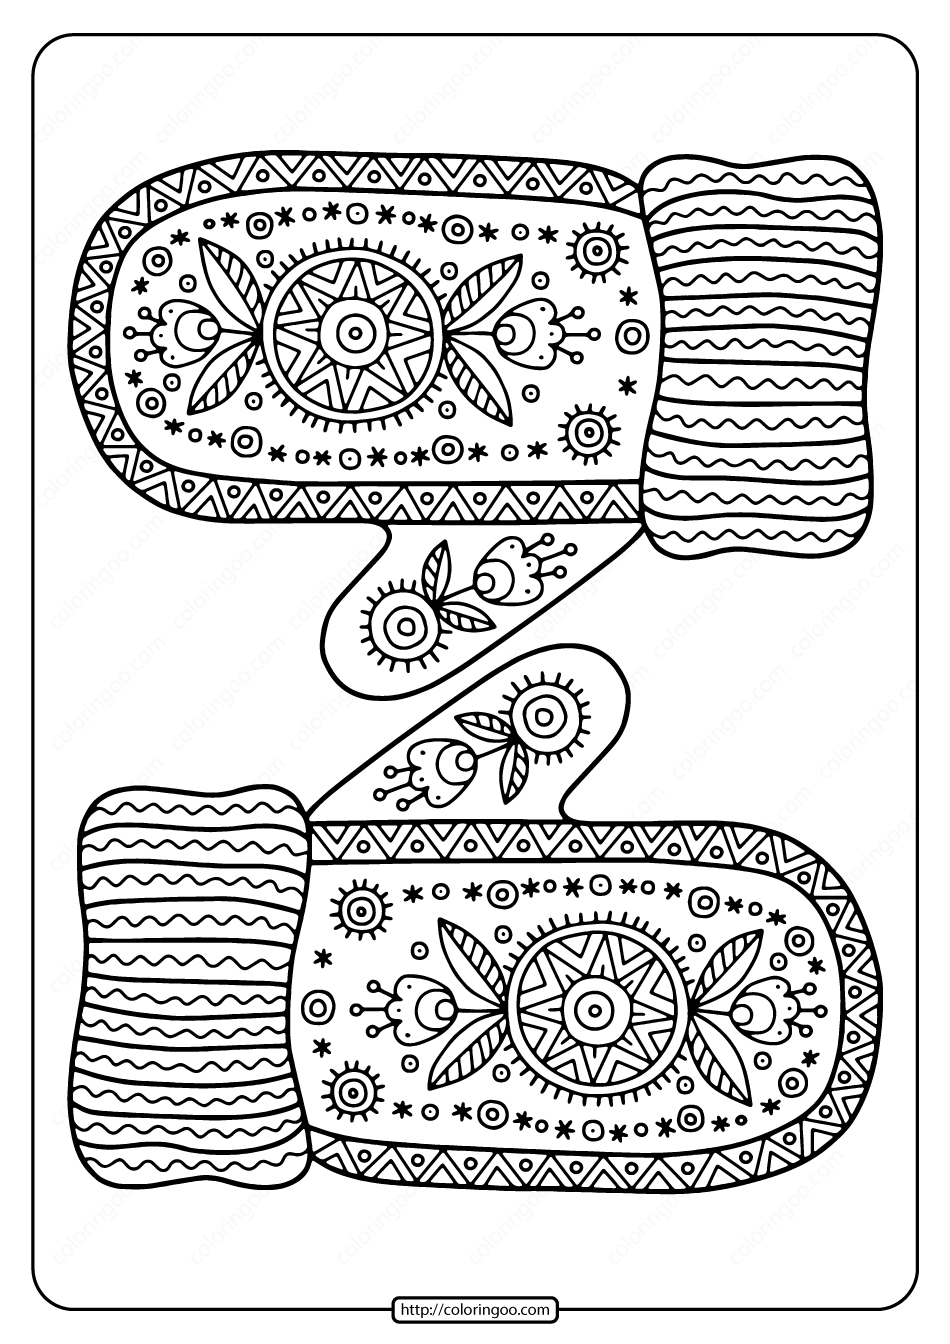 printable mitten coloring page mittens drawing at getdrawings free download mitten coloring page printable